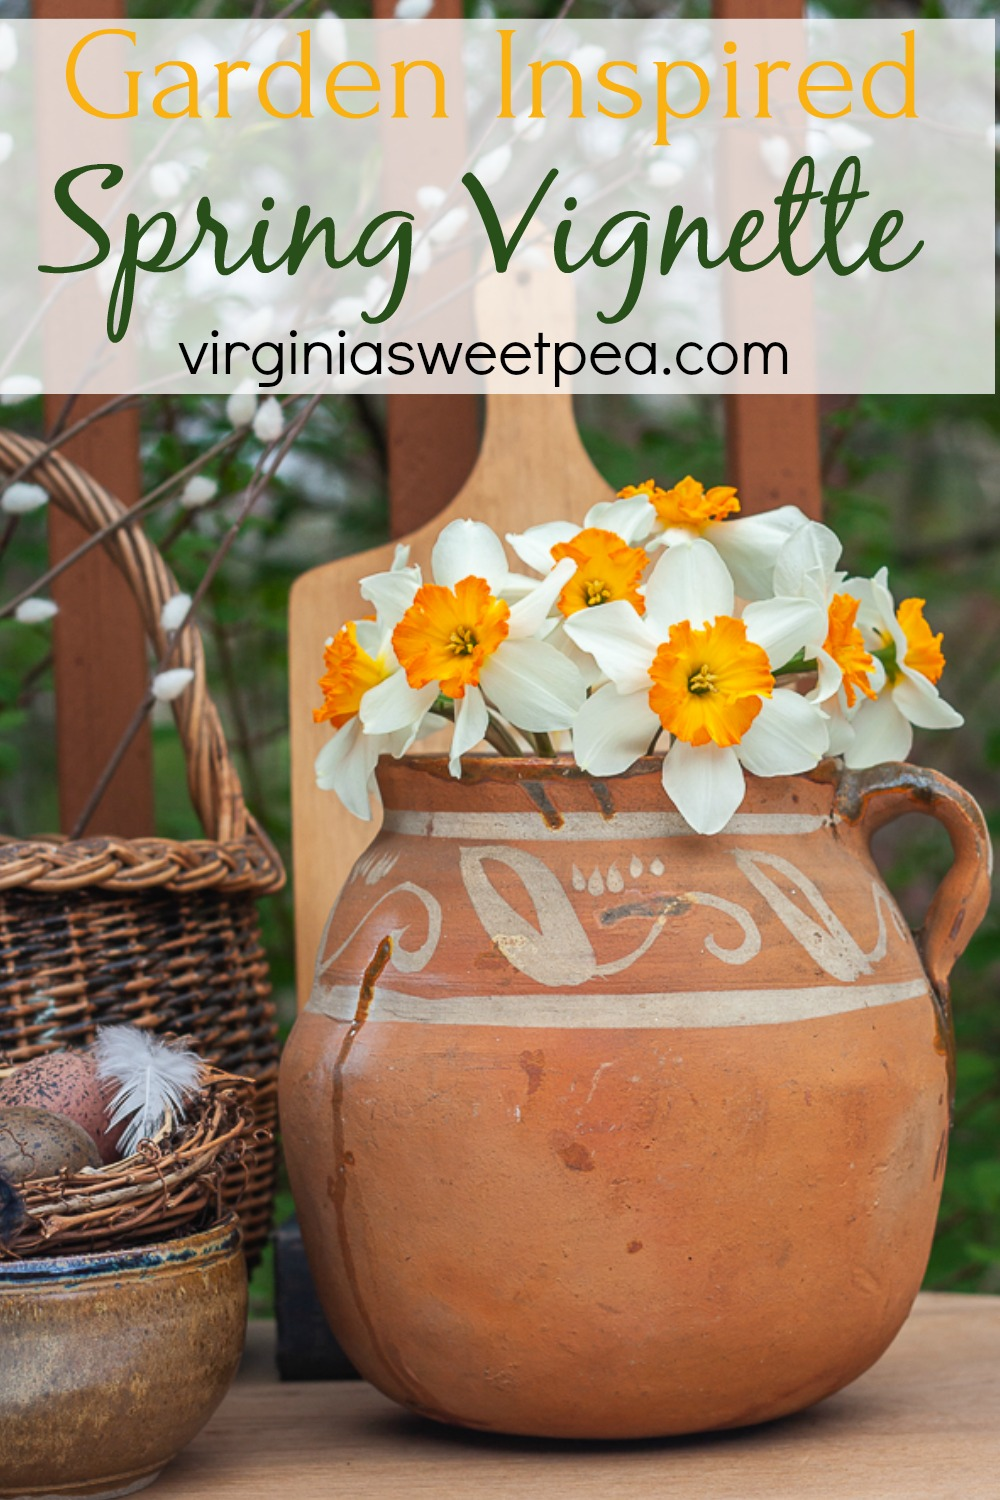 Garden Inspired Spring Vignette - Get tips for creating a garden themed spring vignette to enjoy in your home. 